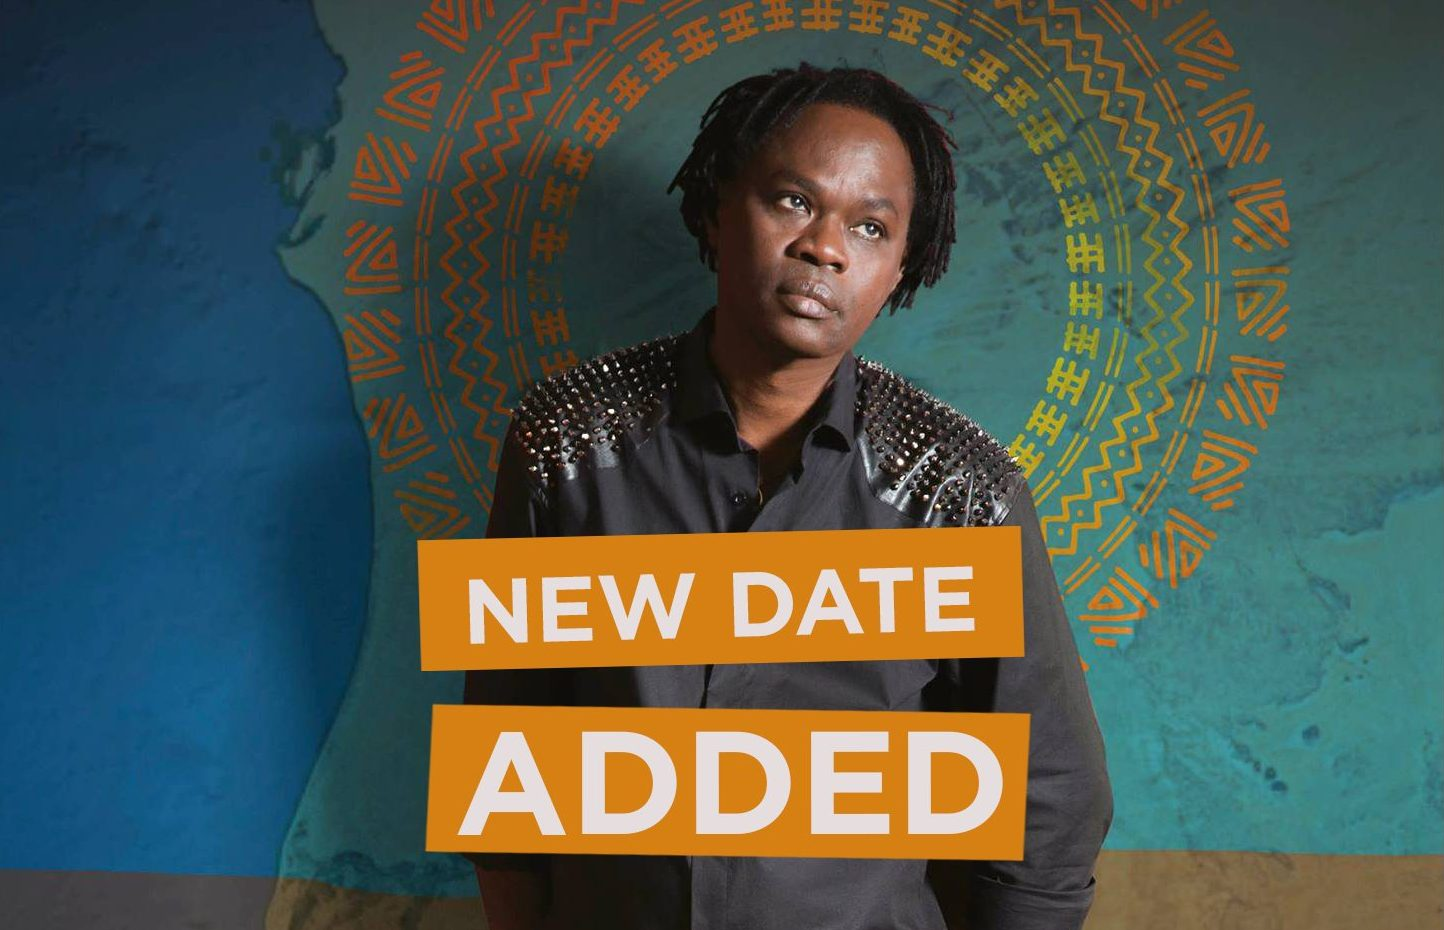 Travelling Light – Baaba Maal in a rare solo performance (new date added!)